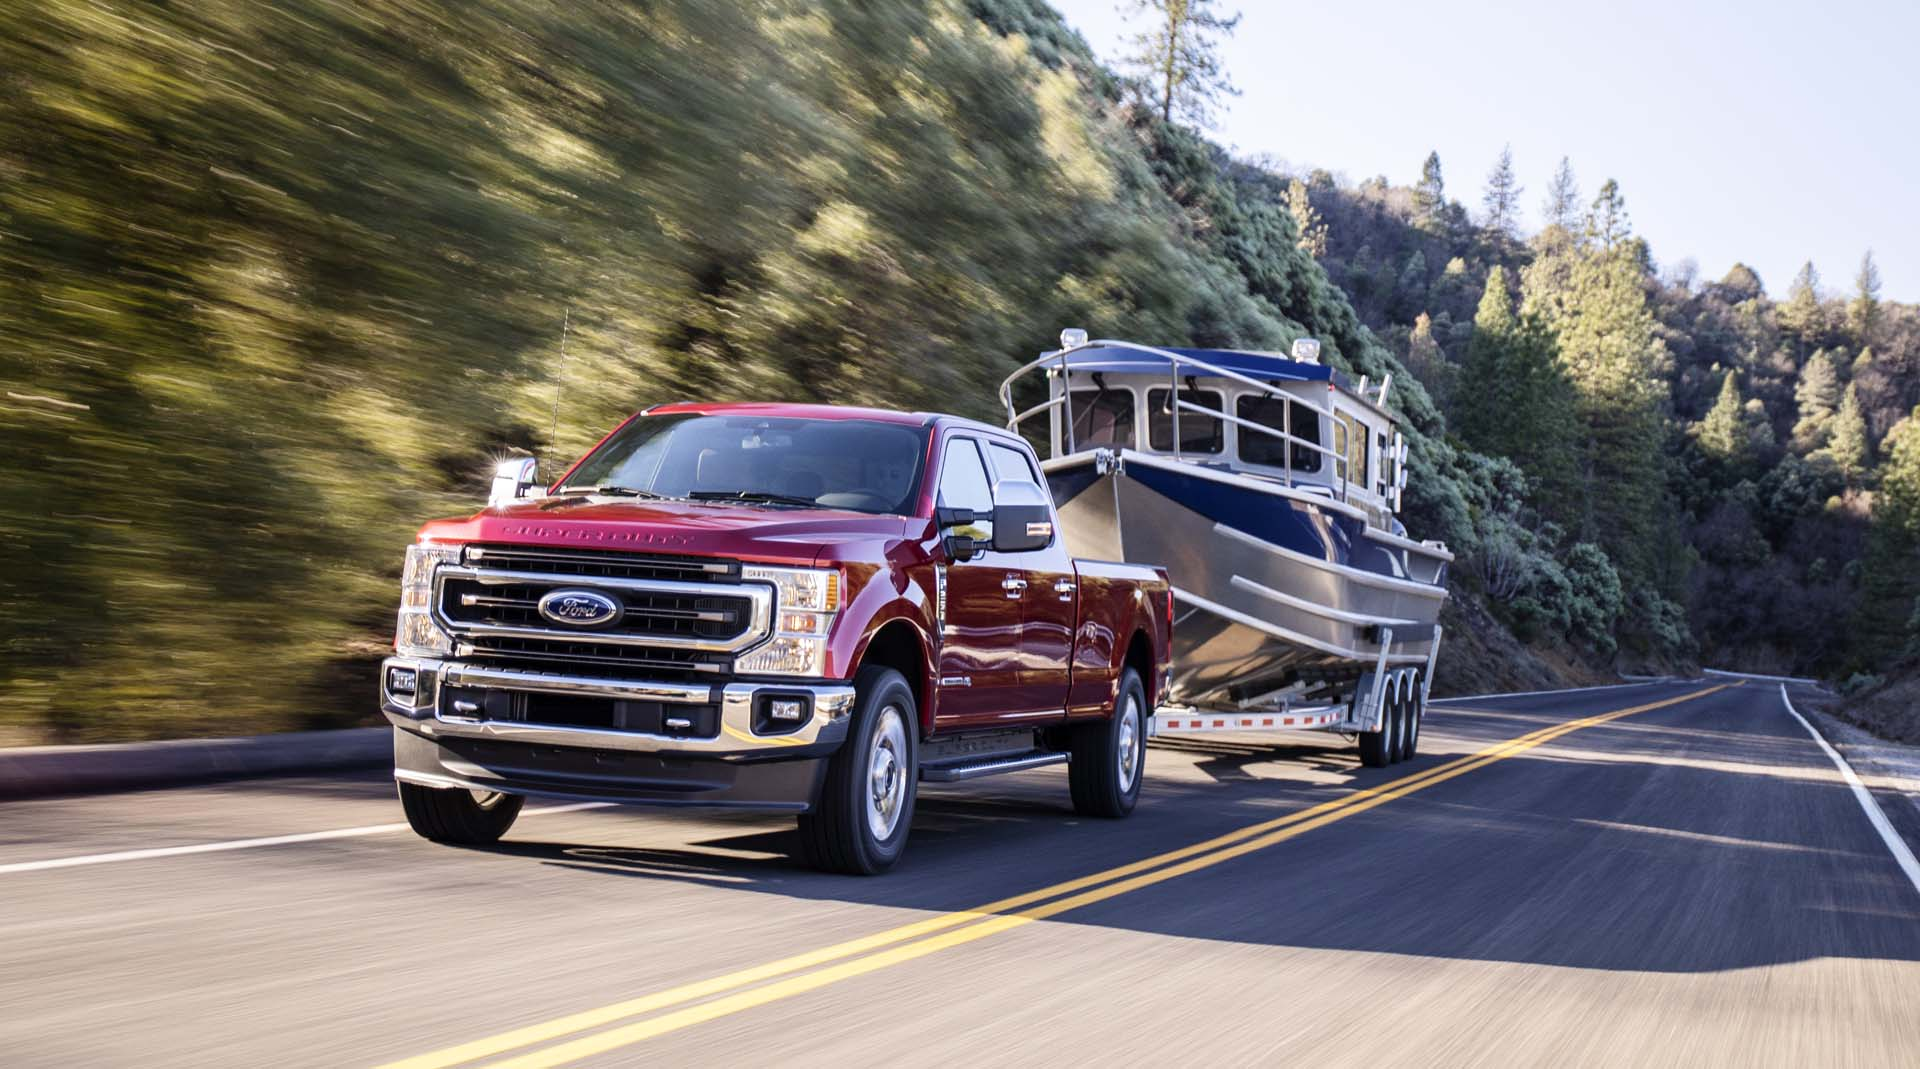 2020 Ford Super Duty unveiled, BMW M850i First Edition, Solar charging: What's New @ The Car Connection